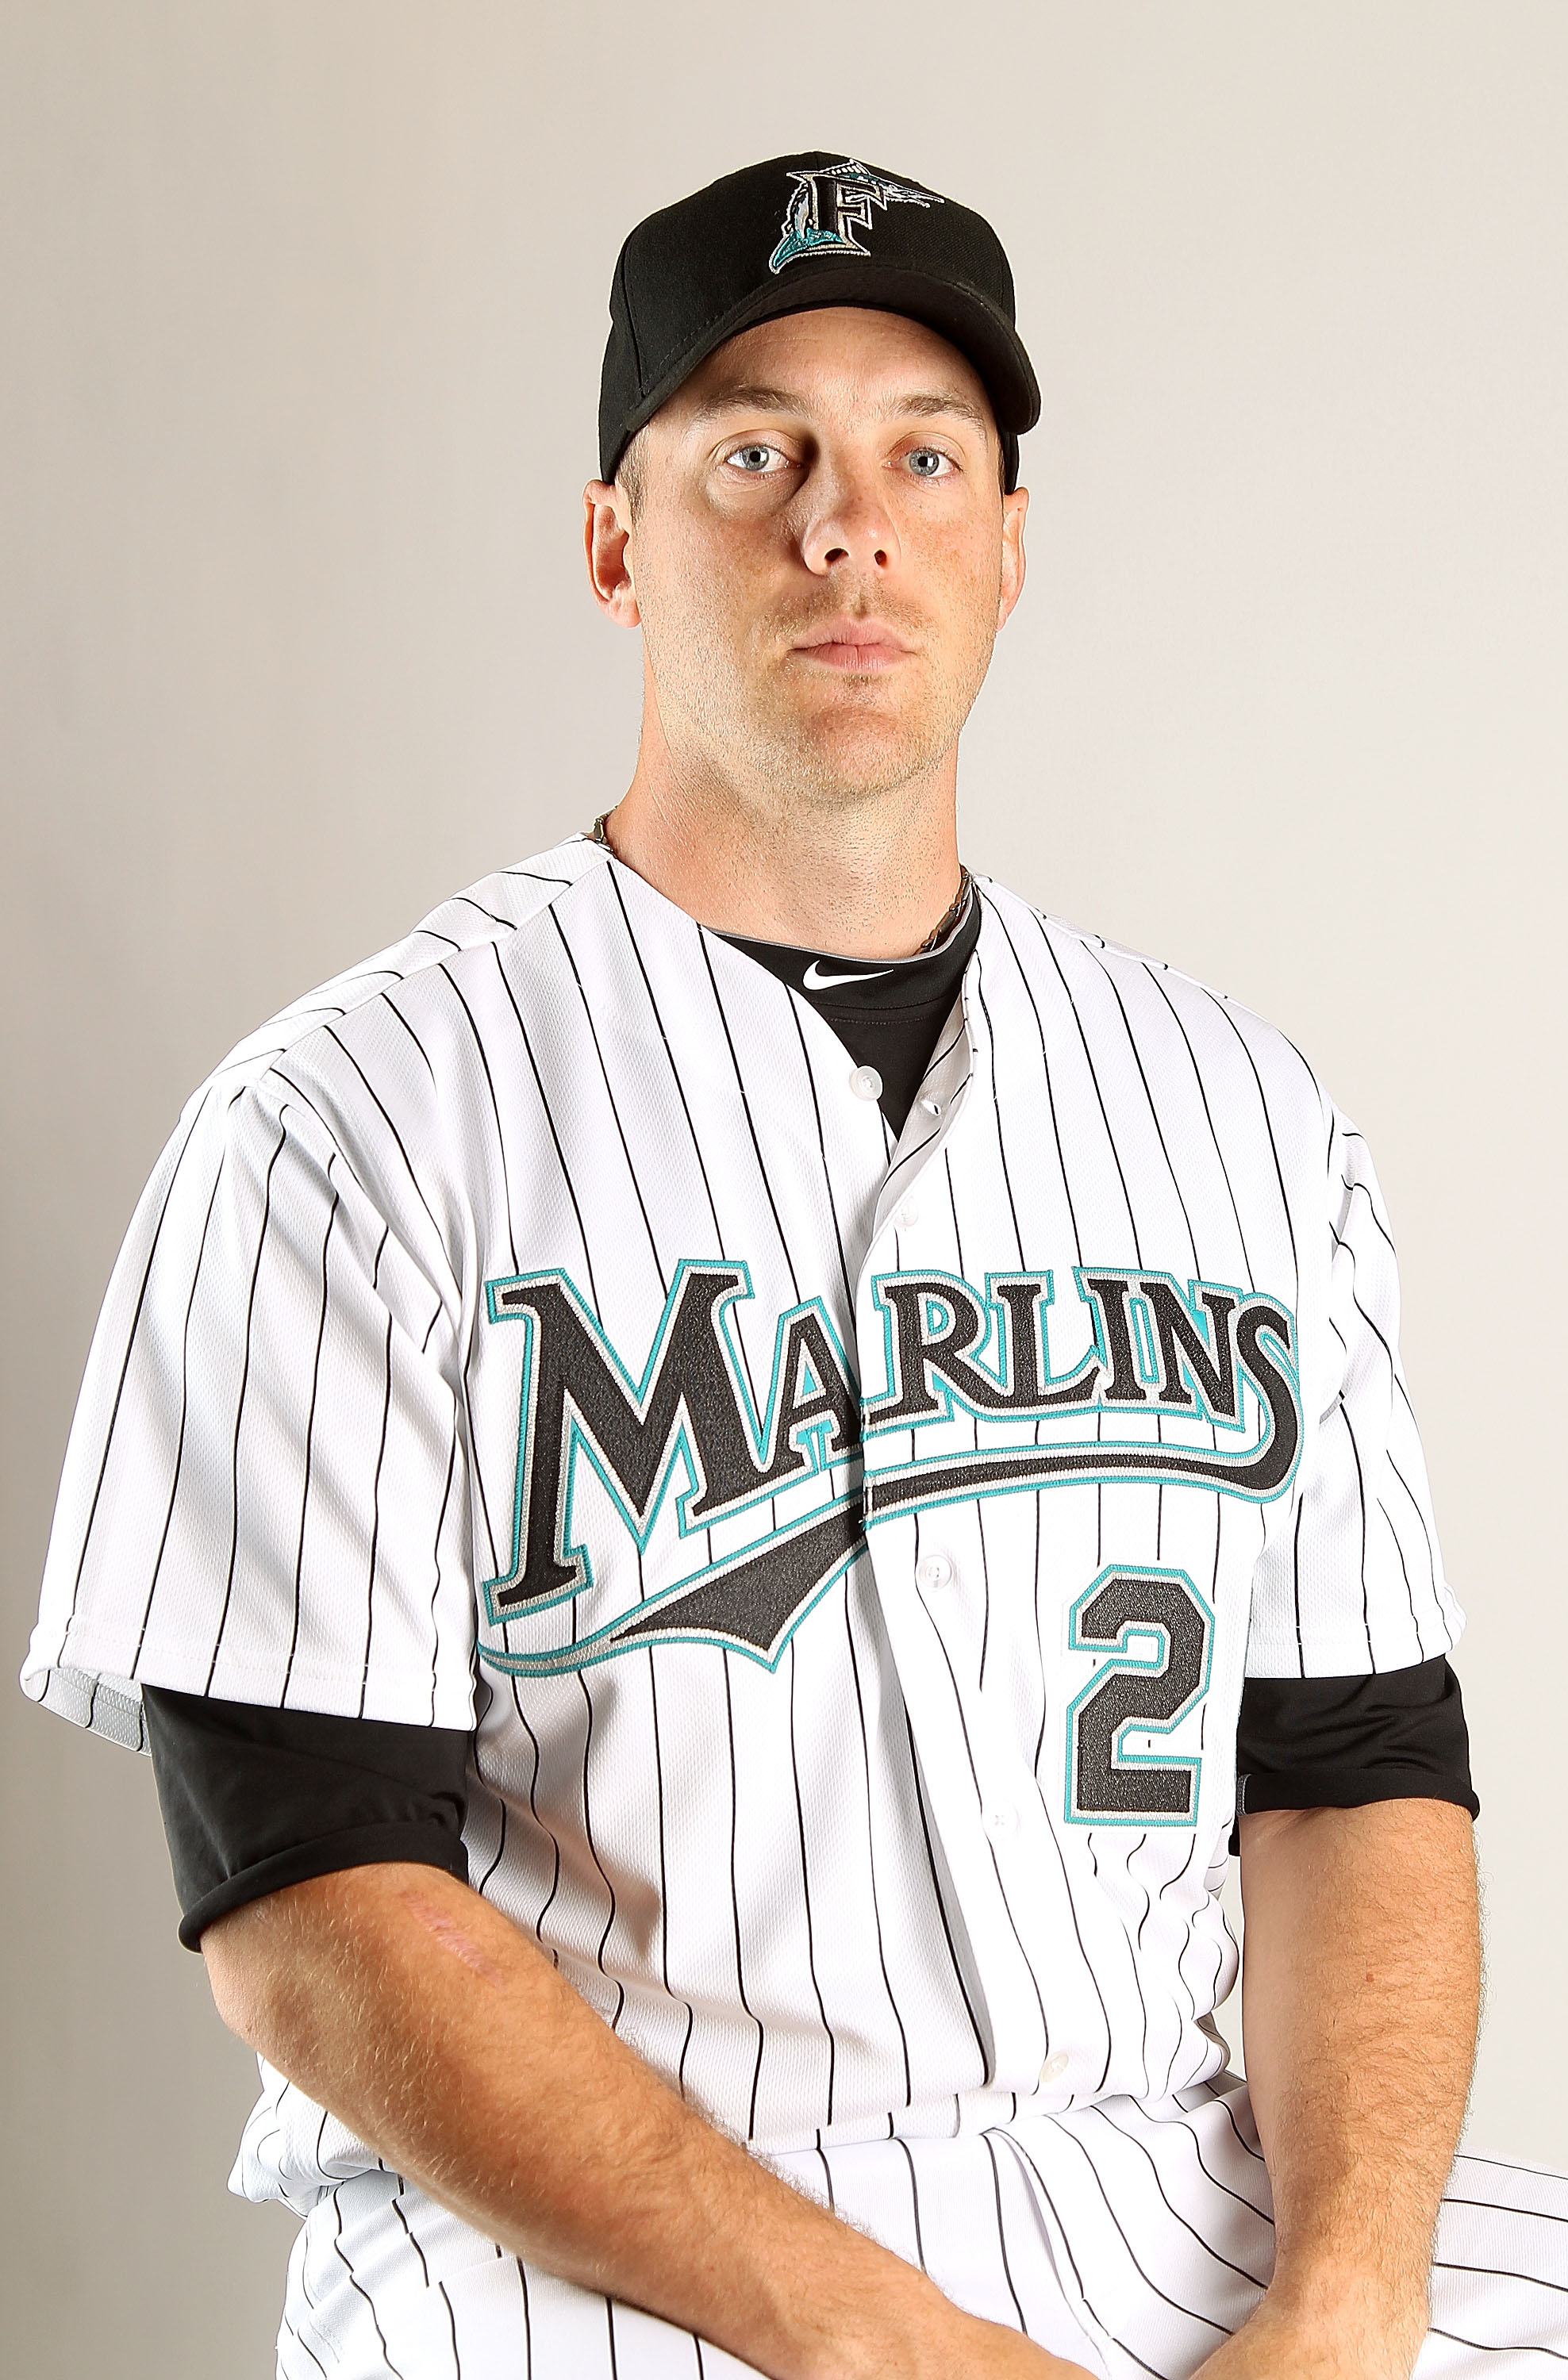 JUPITER, FL - FEBRUARY 23: Shawn Hill #25 of the Florida Marlins during Photo Day at Roger Dean Stadium on February 23, 2011 in Jupiter, Florida.  (Photo by Mike Ehrmann/Getty Images)